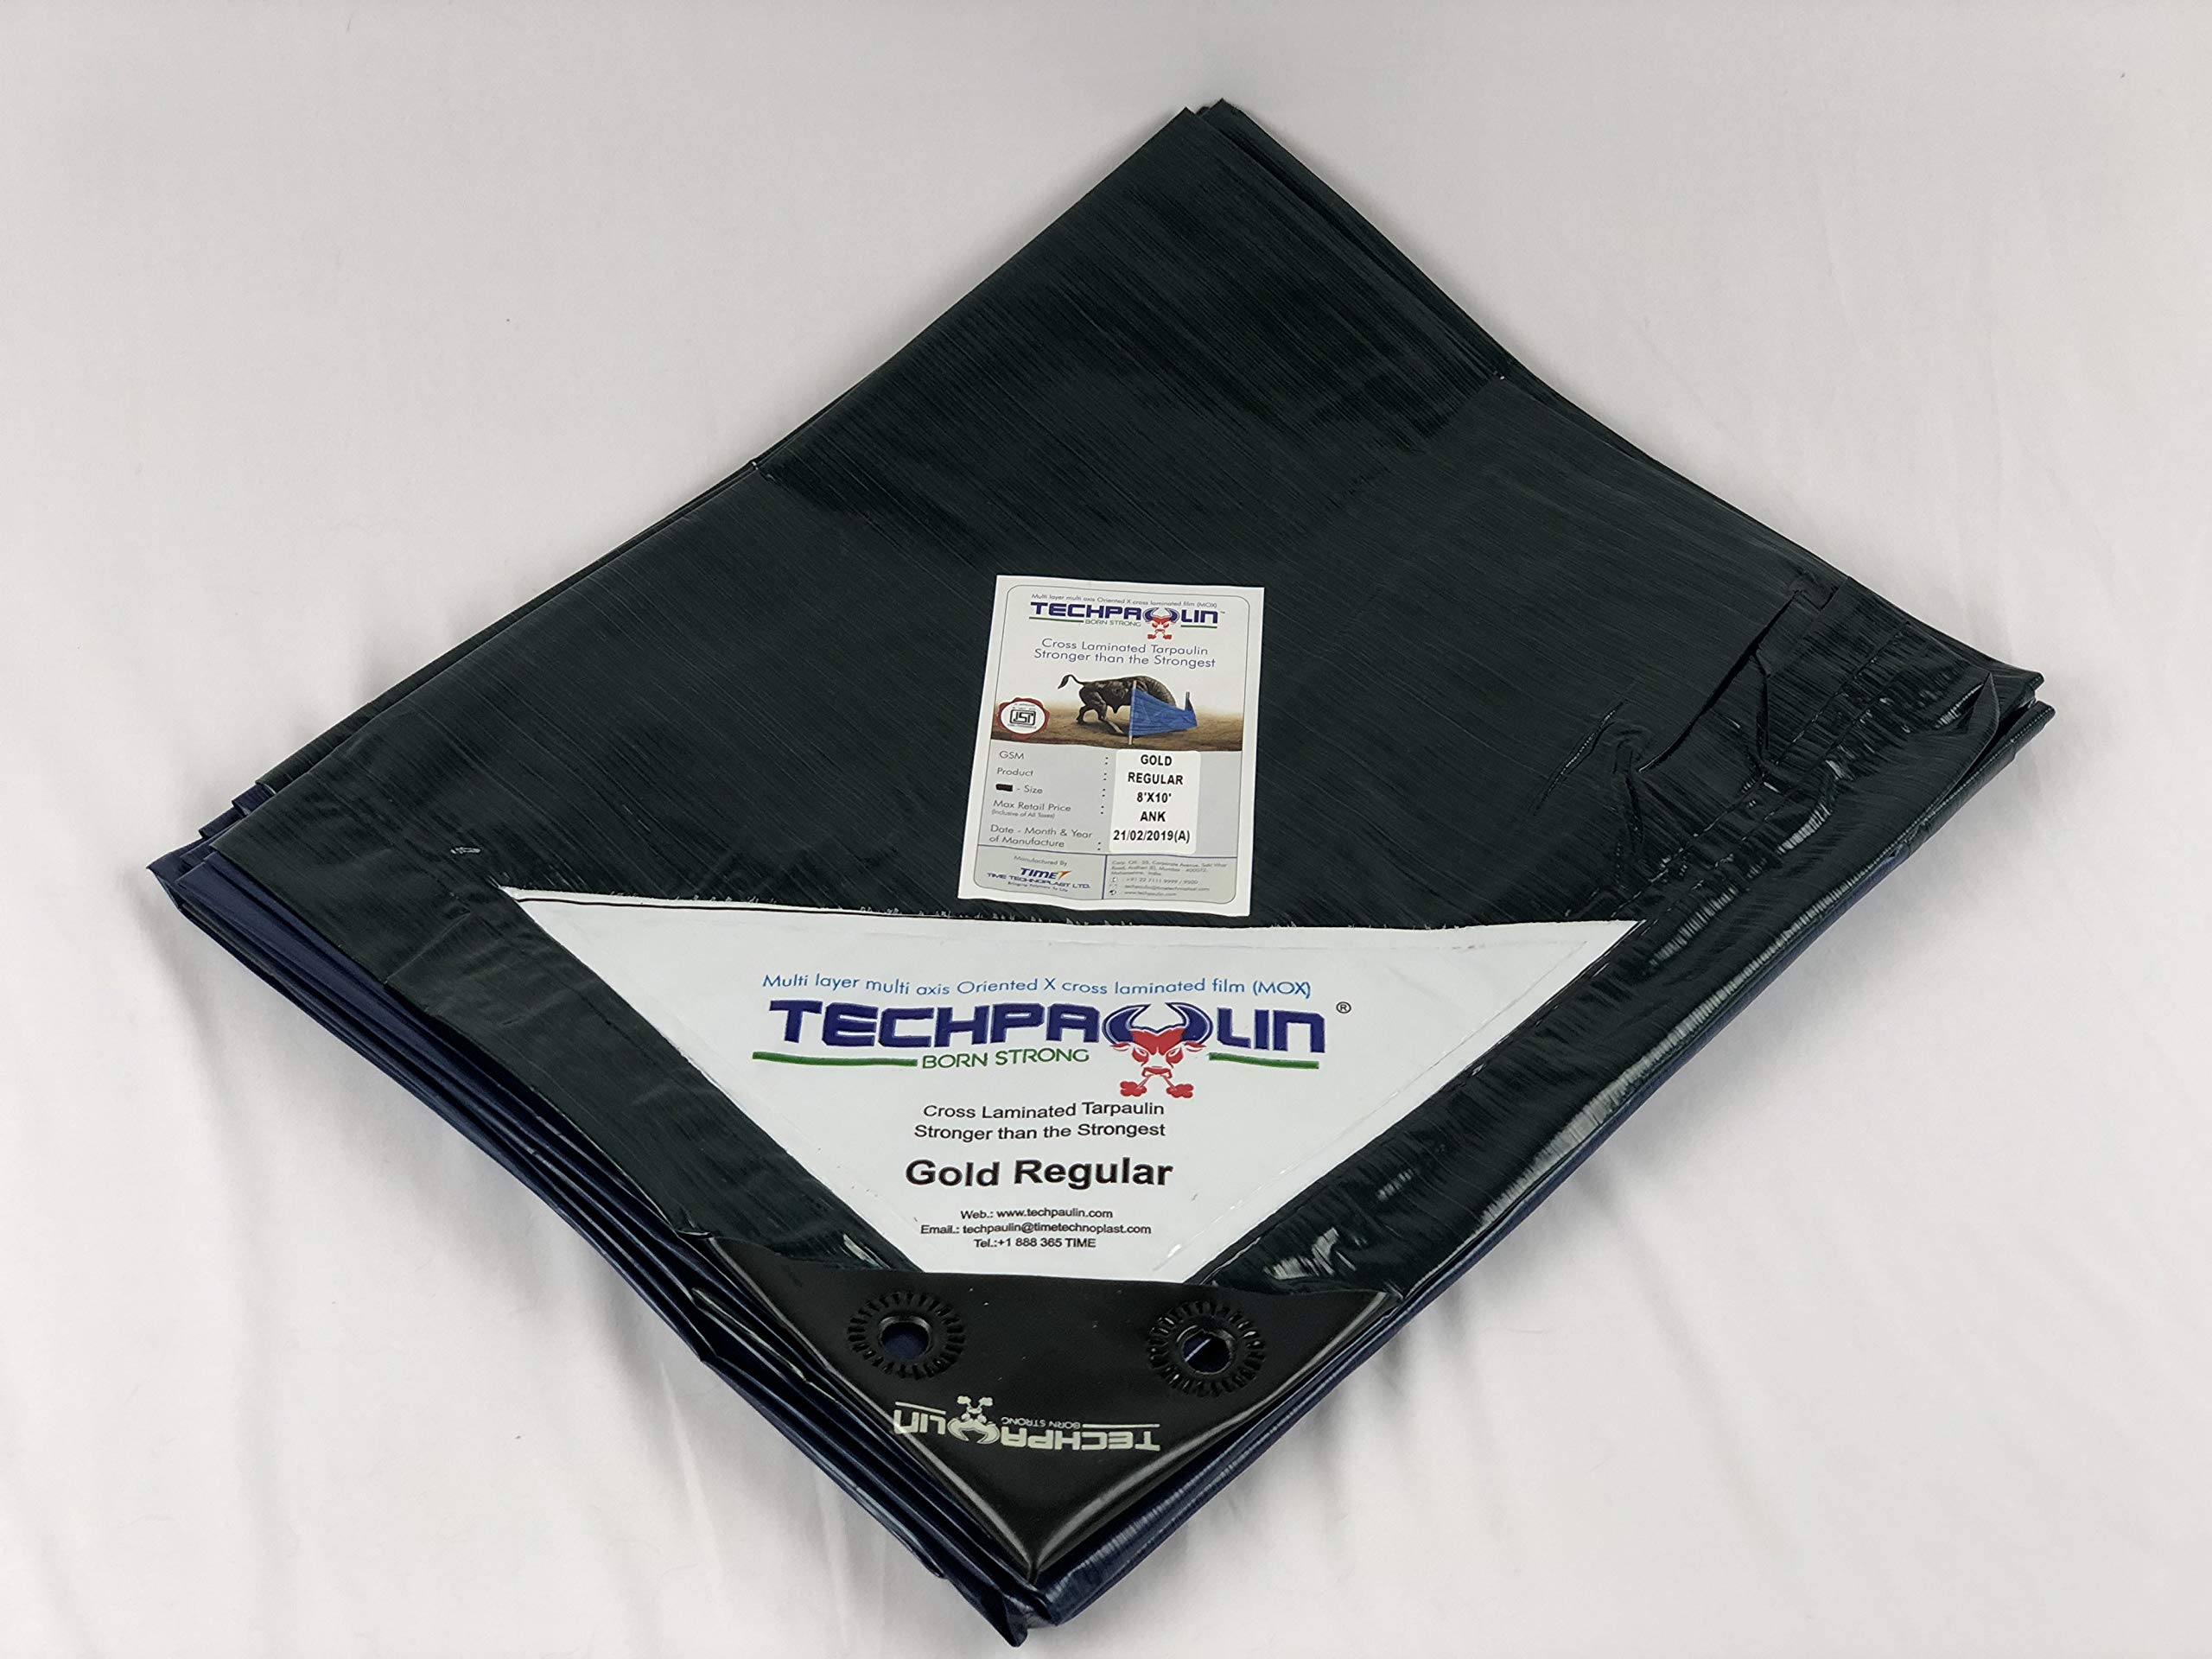 New Tarp Technology. 20x25 Heavy Duty Blue/Green. MOX Film Technology, Anti-Tear, Waterproof, Food Grade, Non-toxic, UV Resistant. Commercial Grade at fantastic price. The best tarp you will ever own! by Queen of Tarps